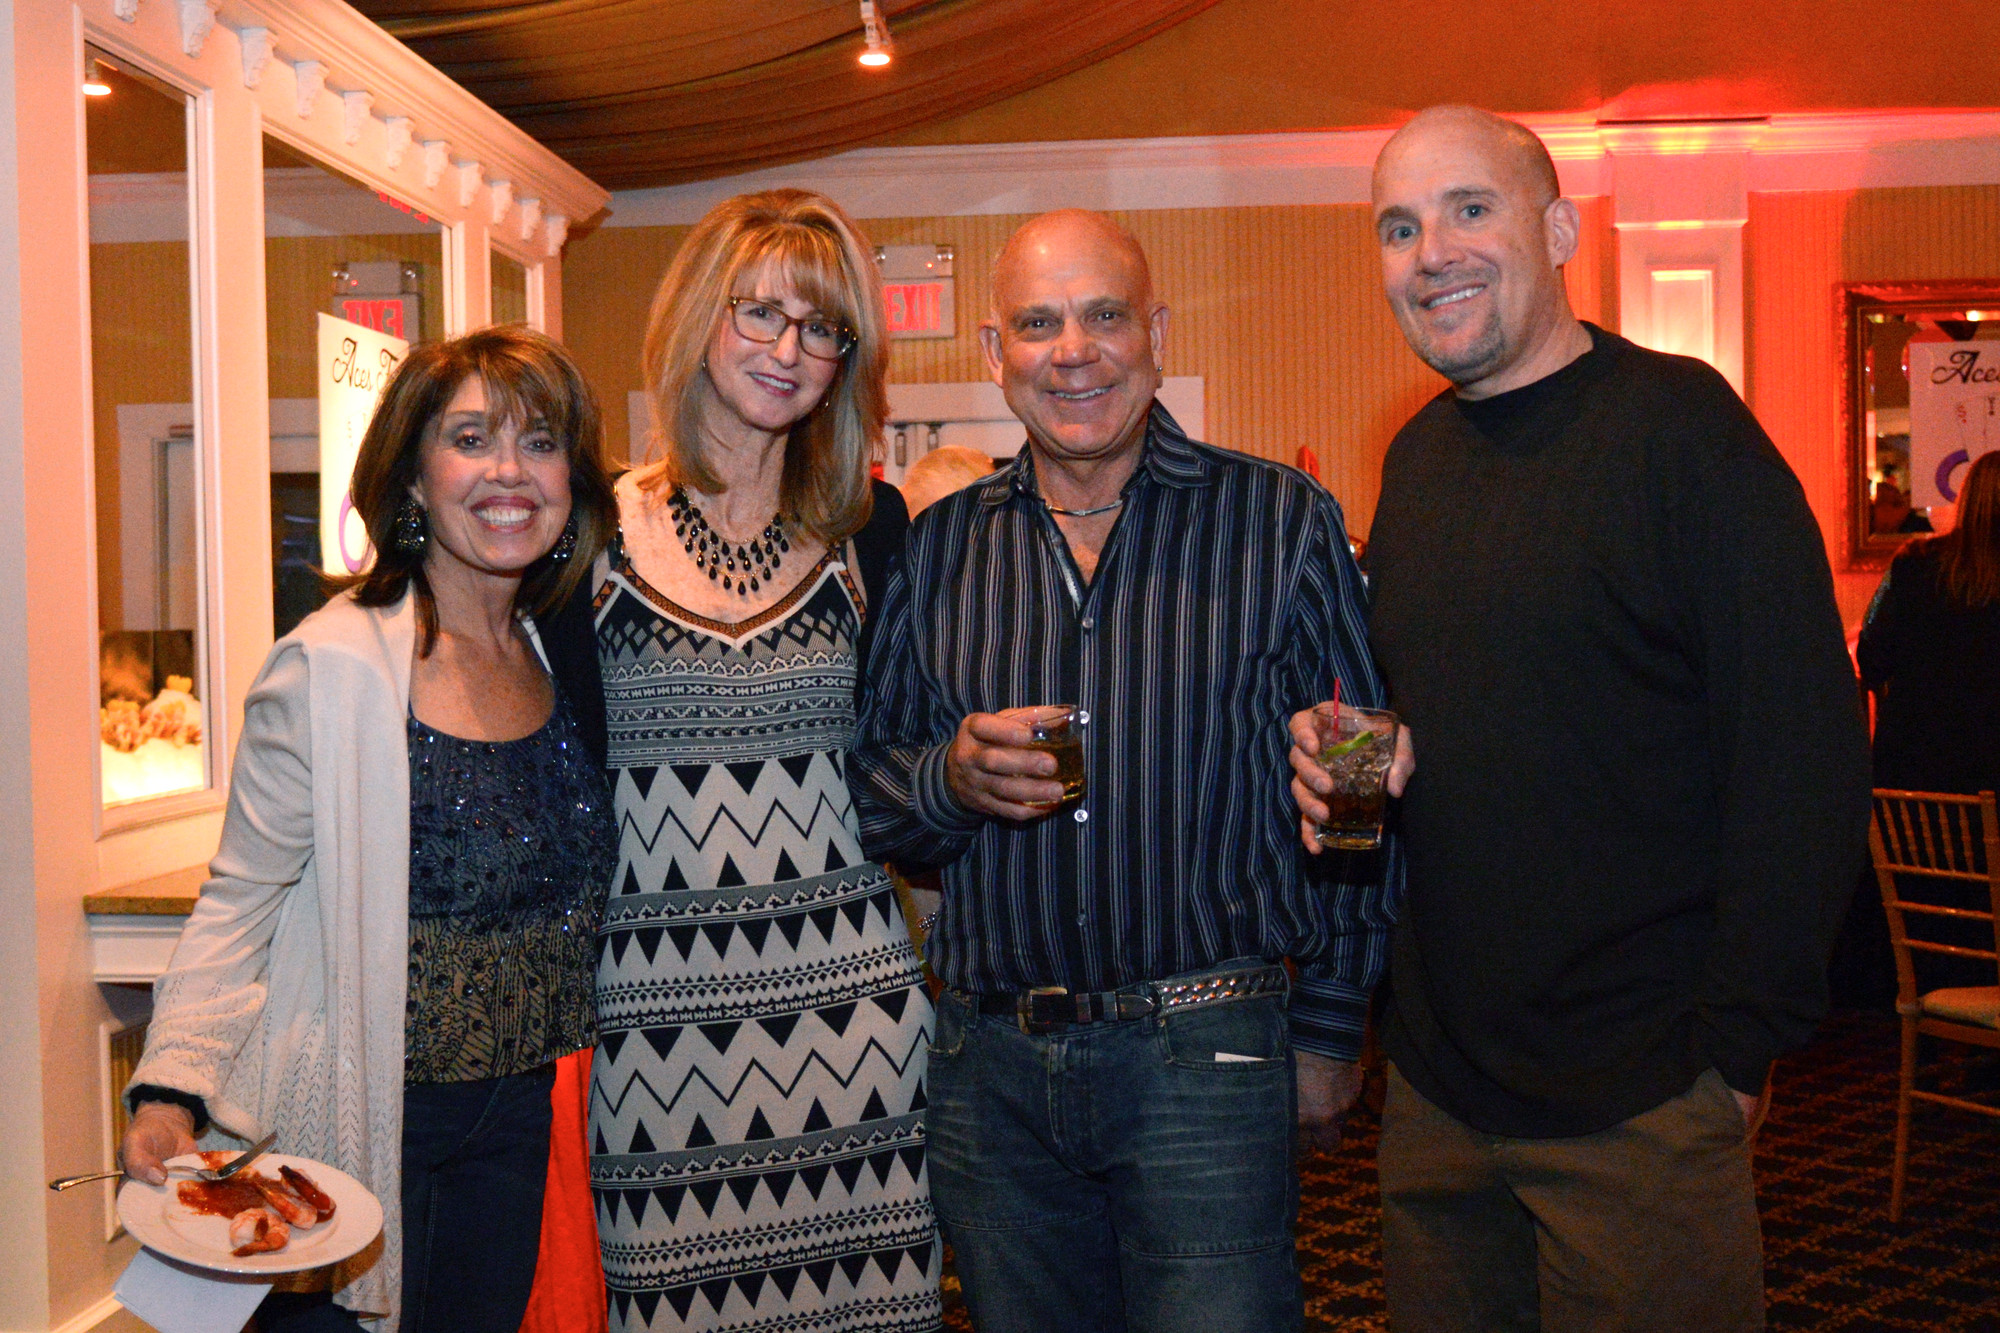 Friends of the Jacoby family Fran Slovin, Hilly Xerri, Lenny Slovin, Ray Xerri at the Sydne Jacoby Foundation Casino Night fundraiser held at bridgeview in Island Park